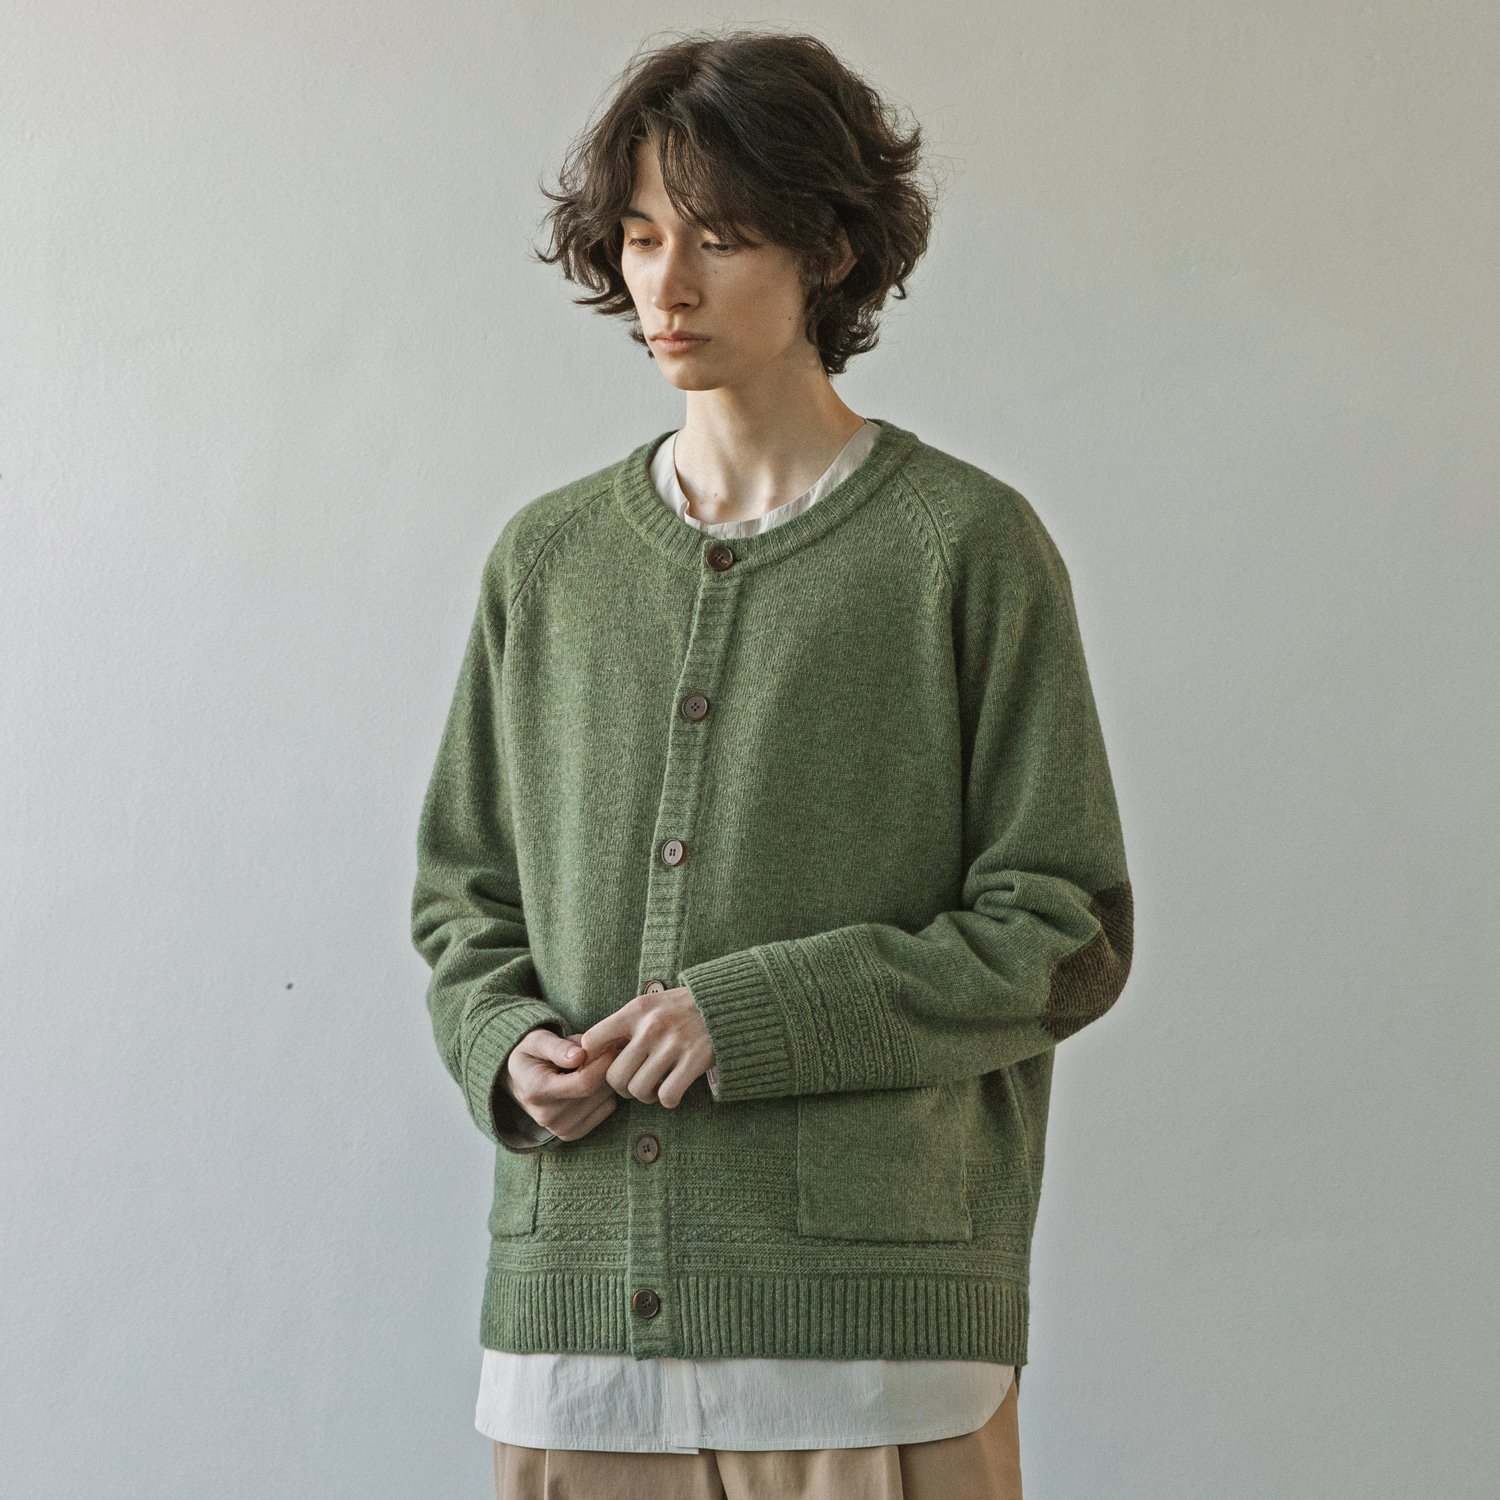 21SS Gentle Link Cardigan (Green Bean)